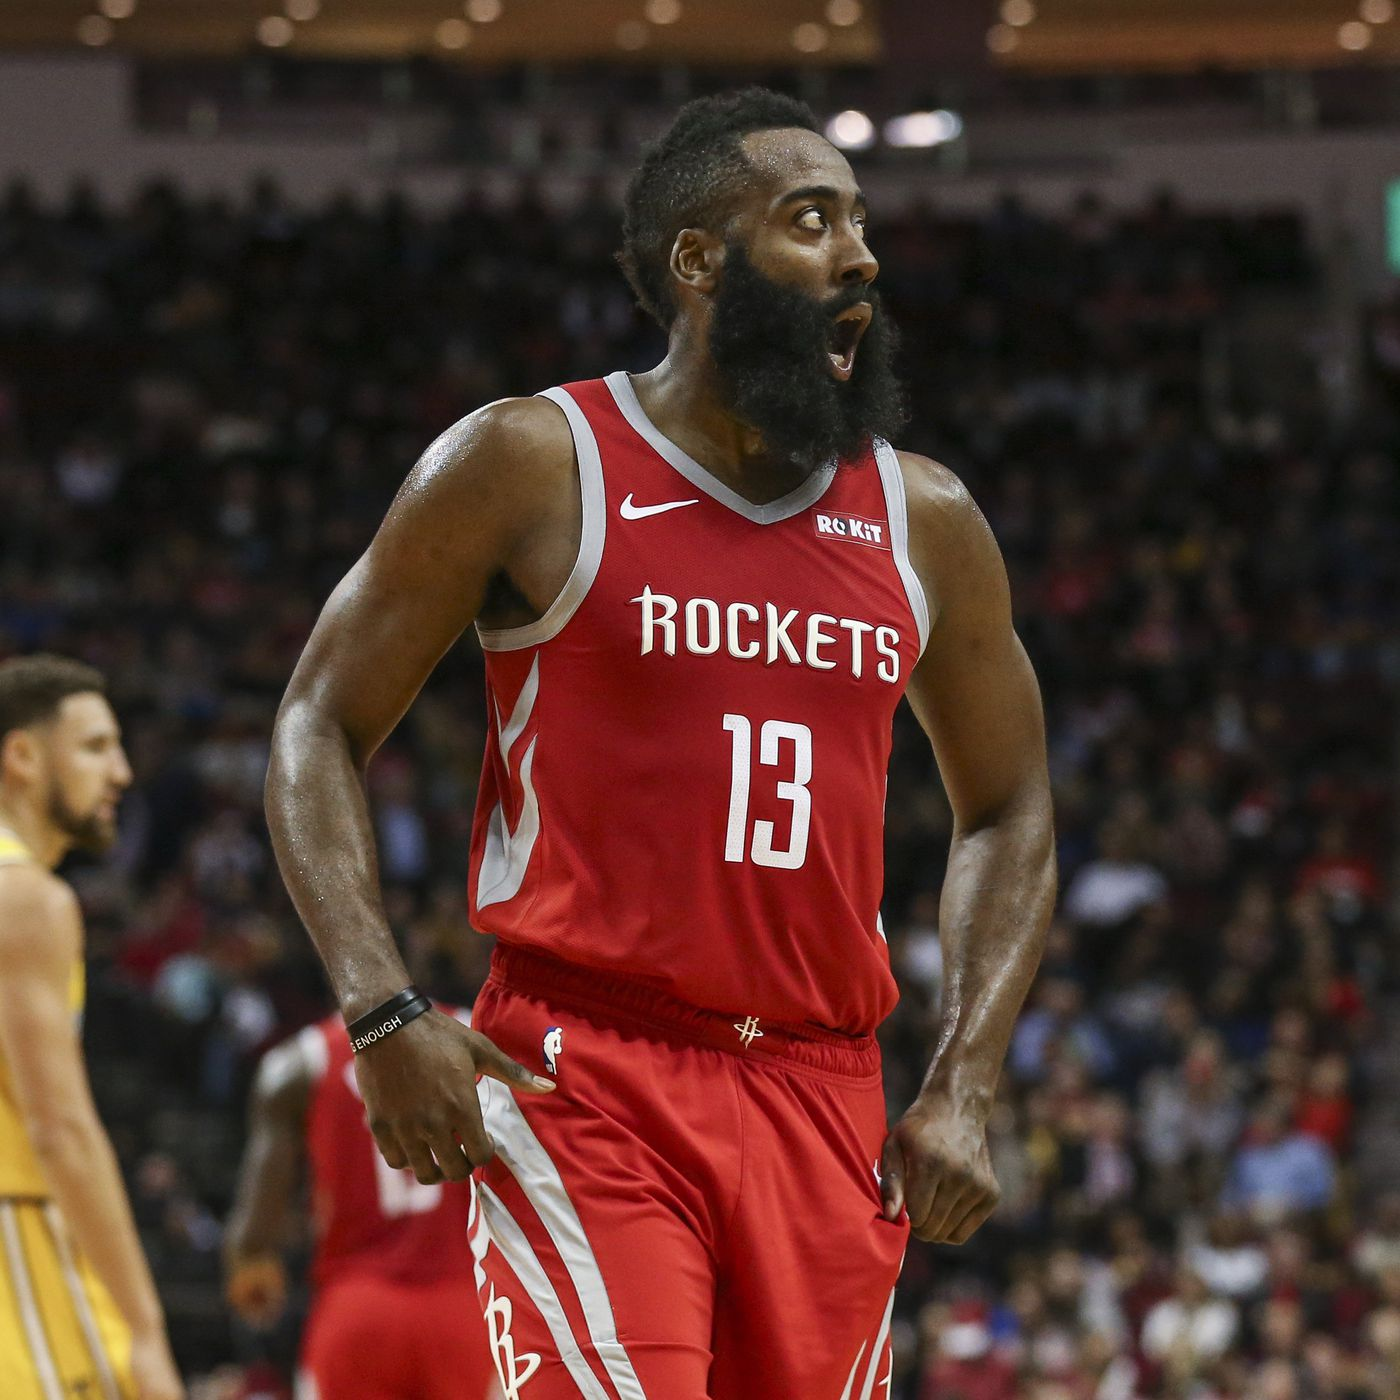 b03855ad689 Preview  Warriors prepare for Rockets and the red hot James Harden - Golden  State Of Mind